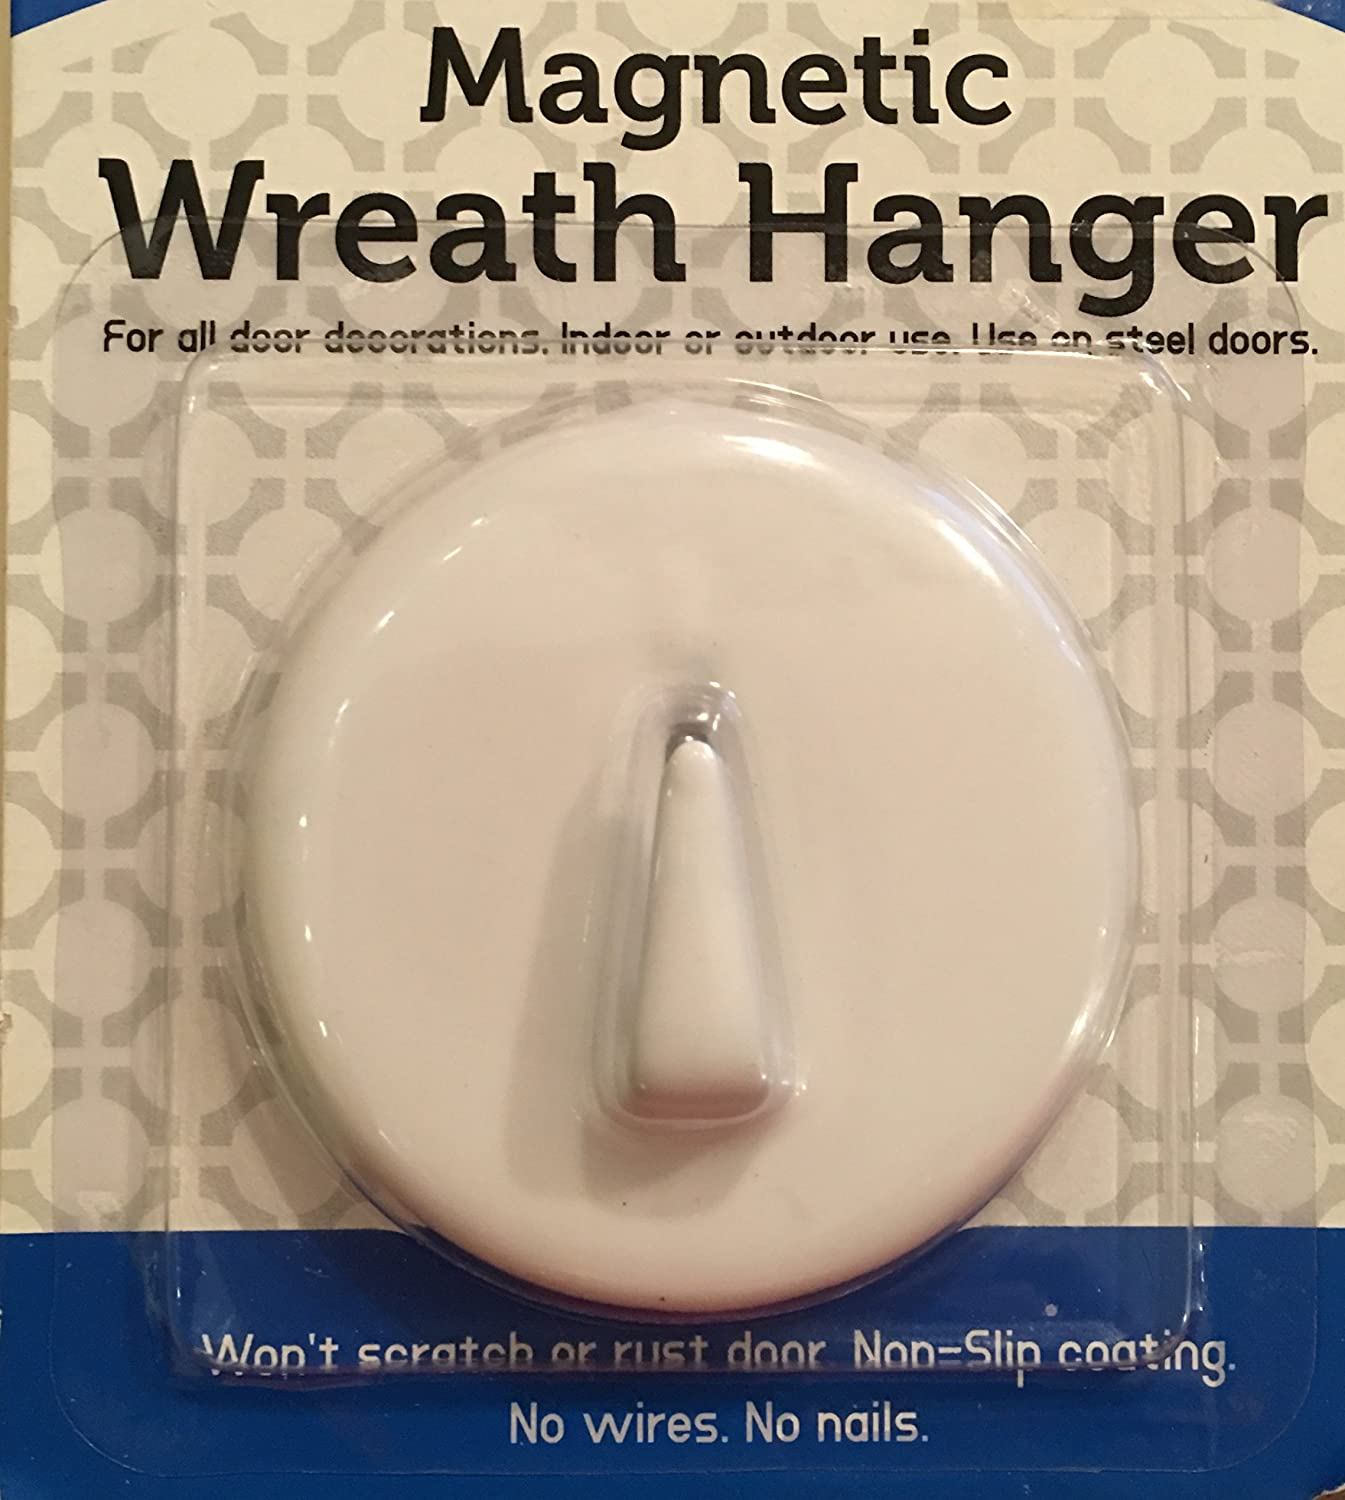 White Magnetic Wreath Hanger Holder Hook - For Steel Doors - No Nails or Wires! Holds up to 6 pounds. Nantucket